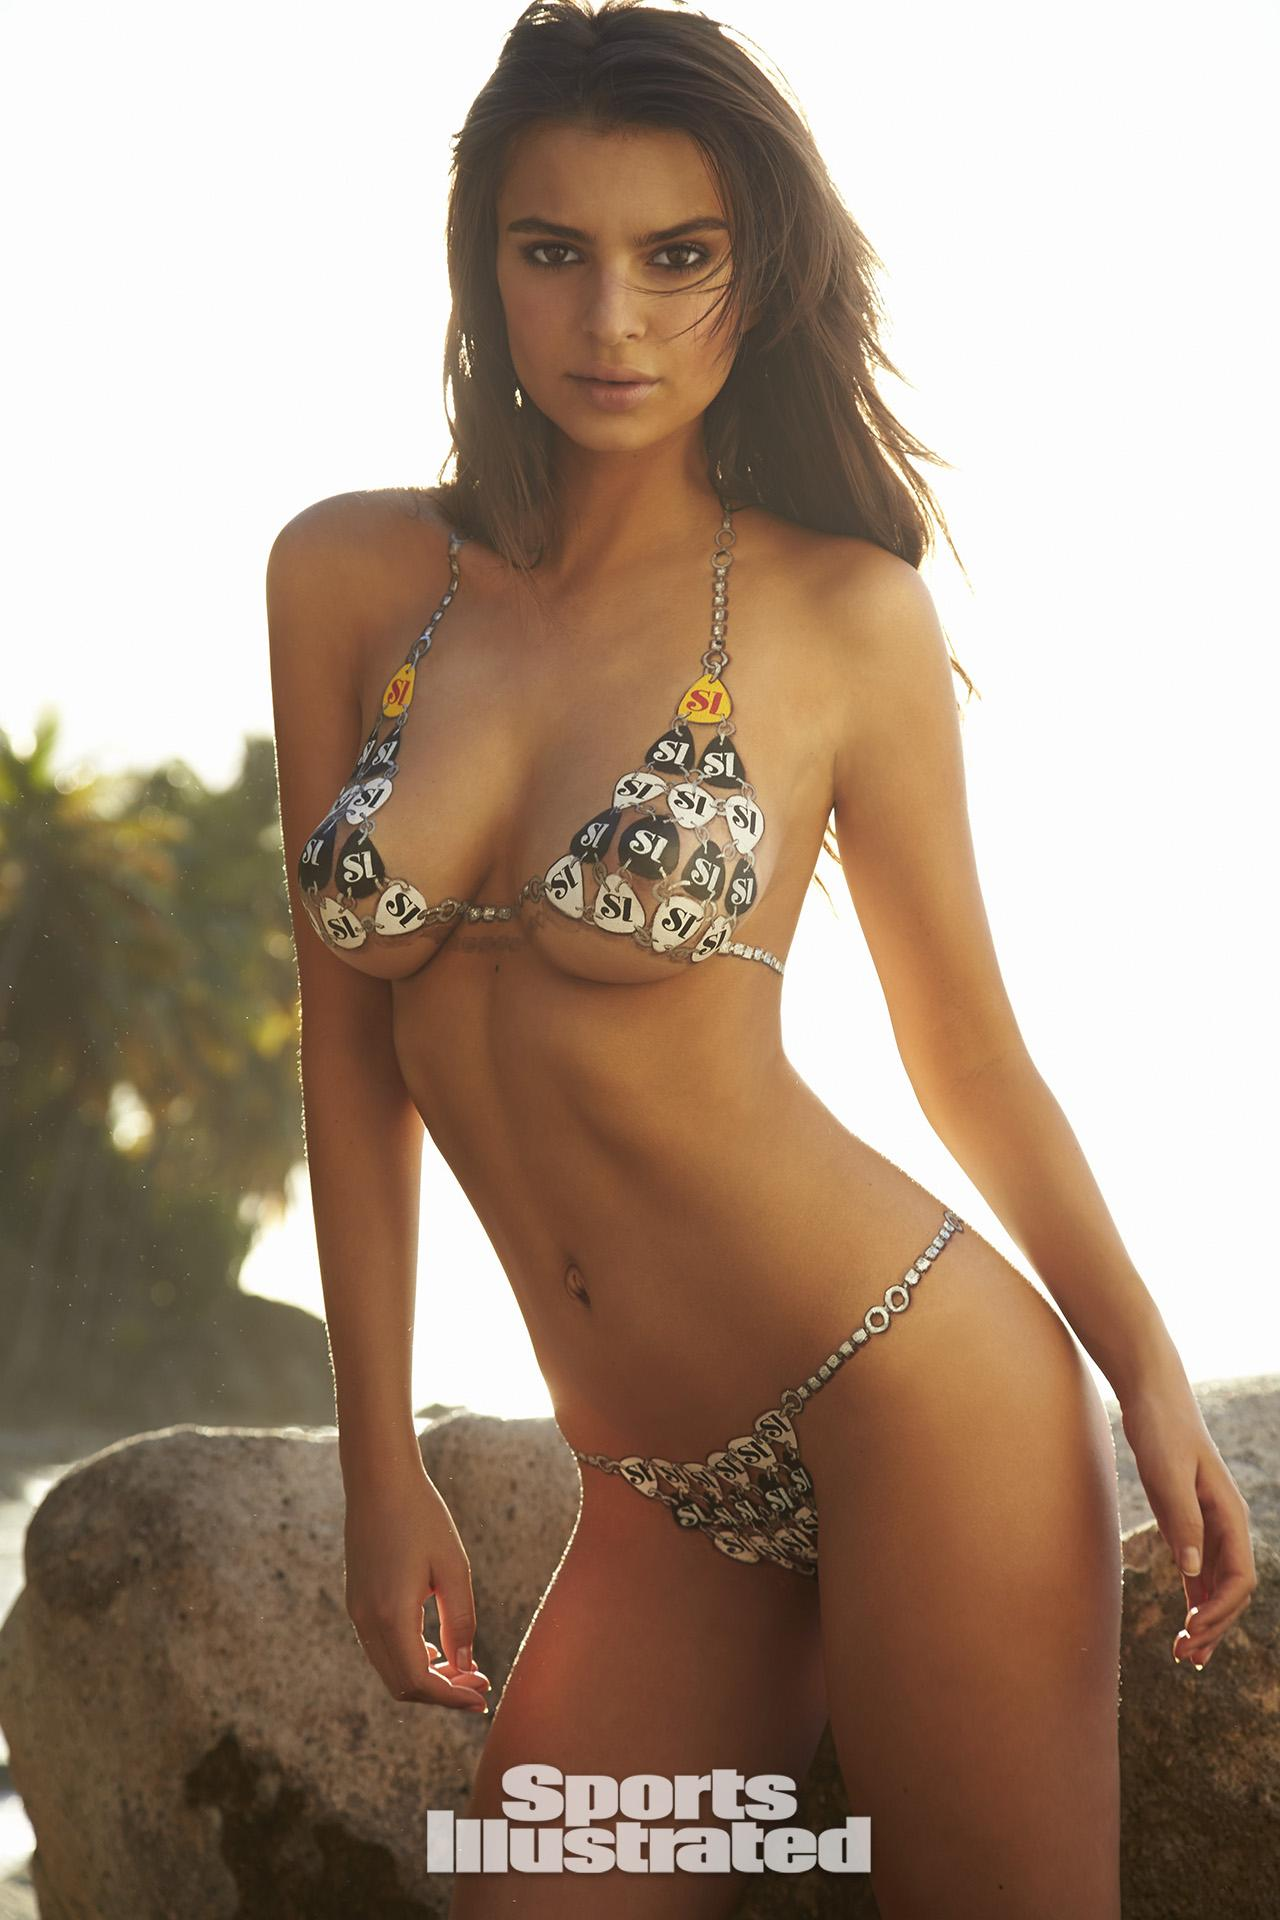 ... Swimsuit Body Paint Photos, Sports Illustrated Swimsuit 2014